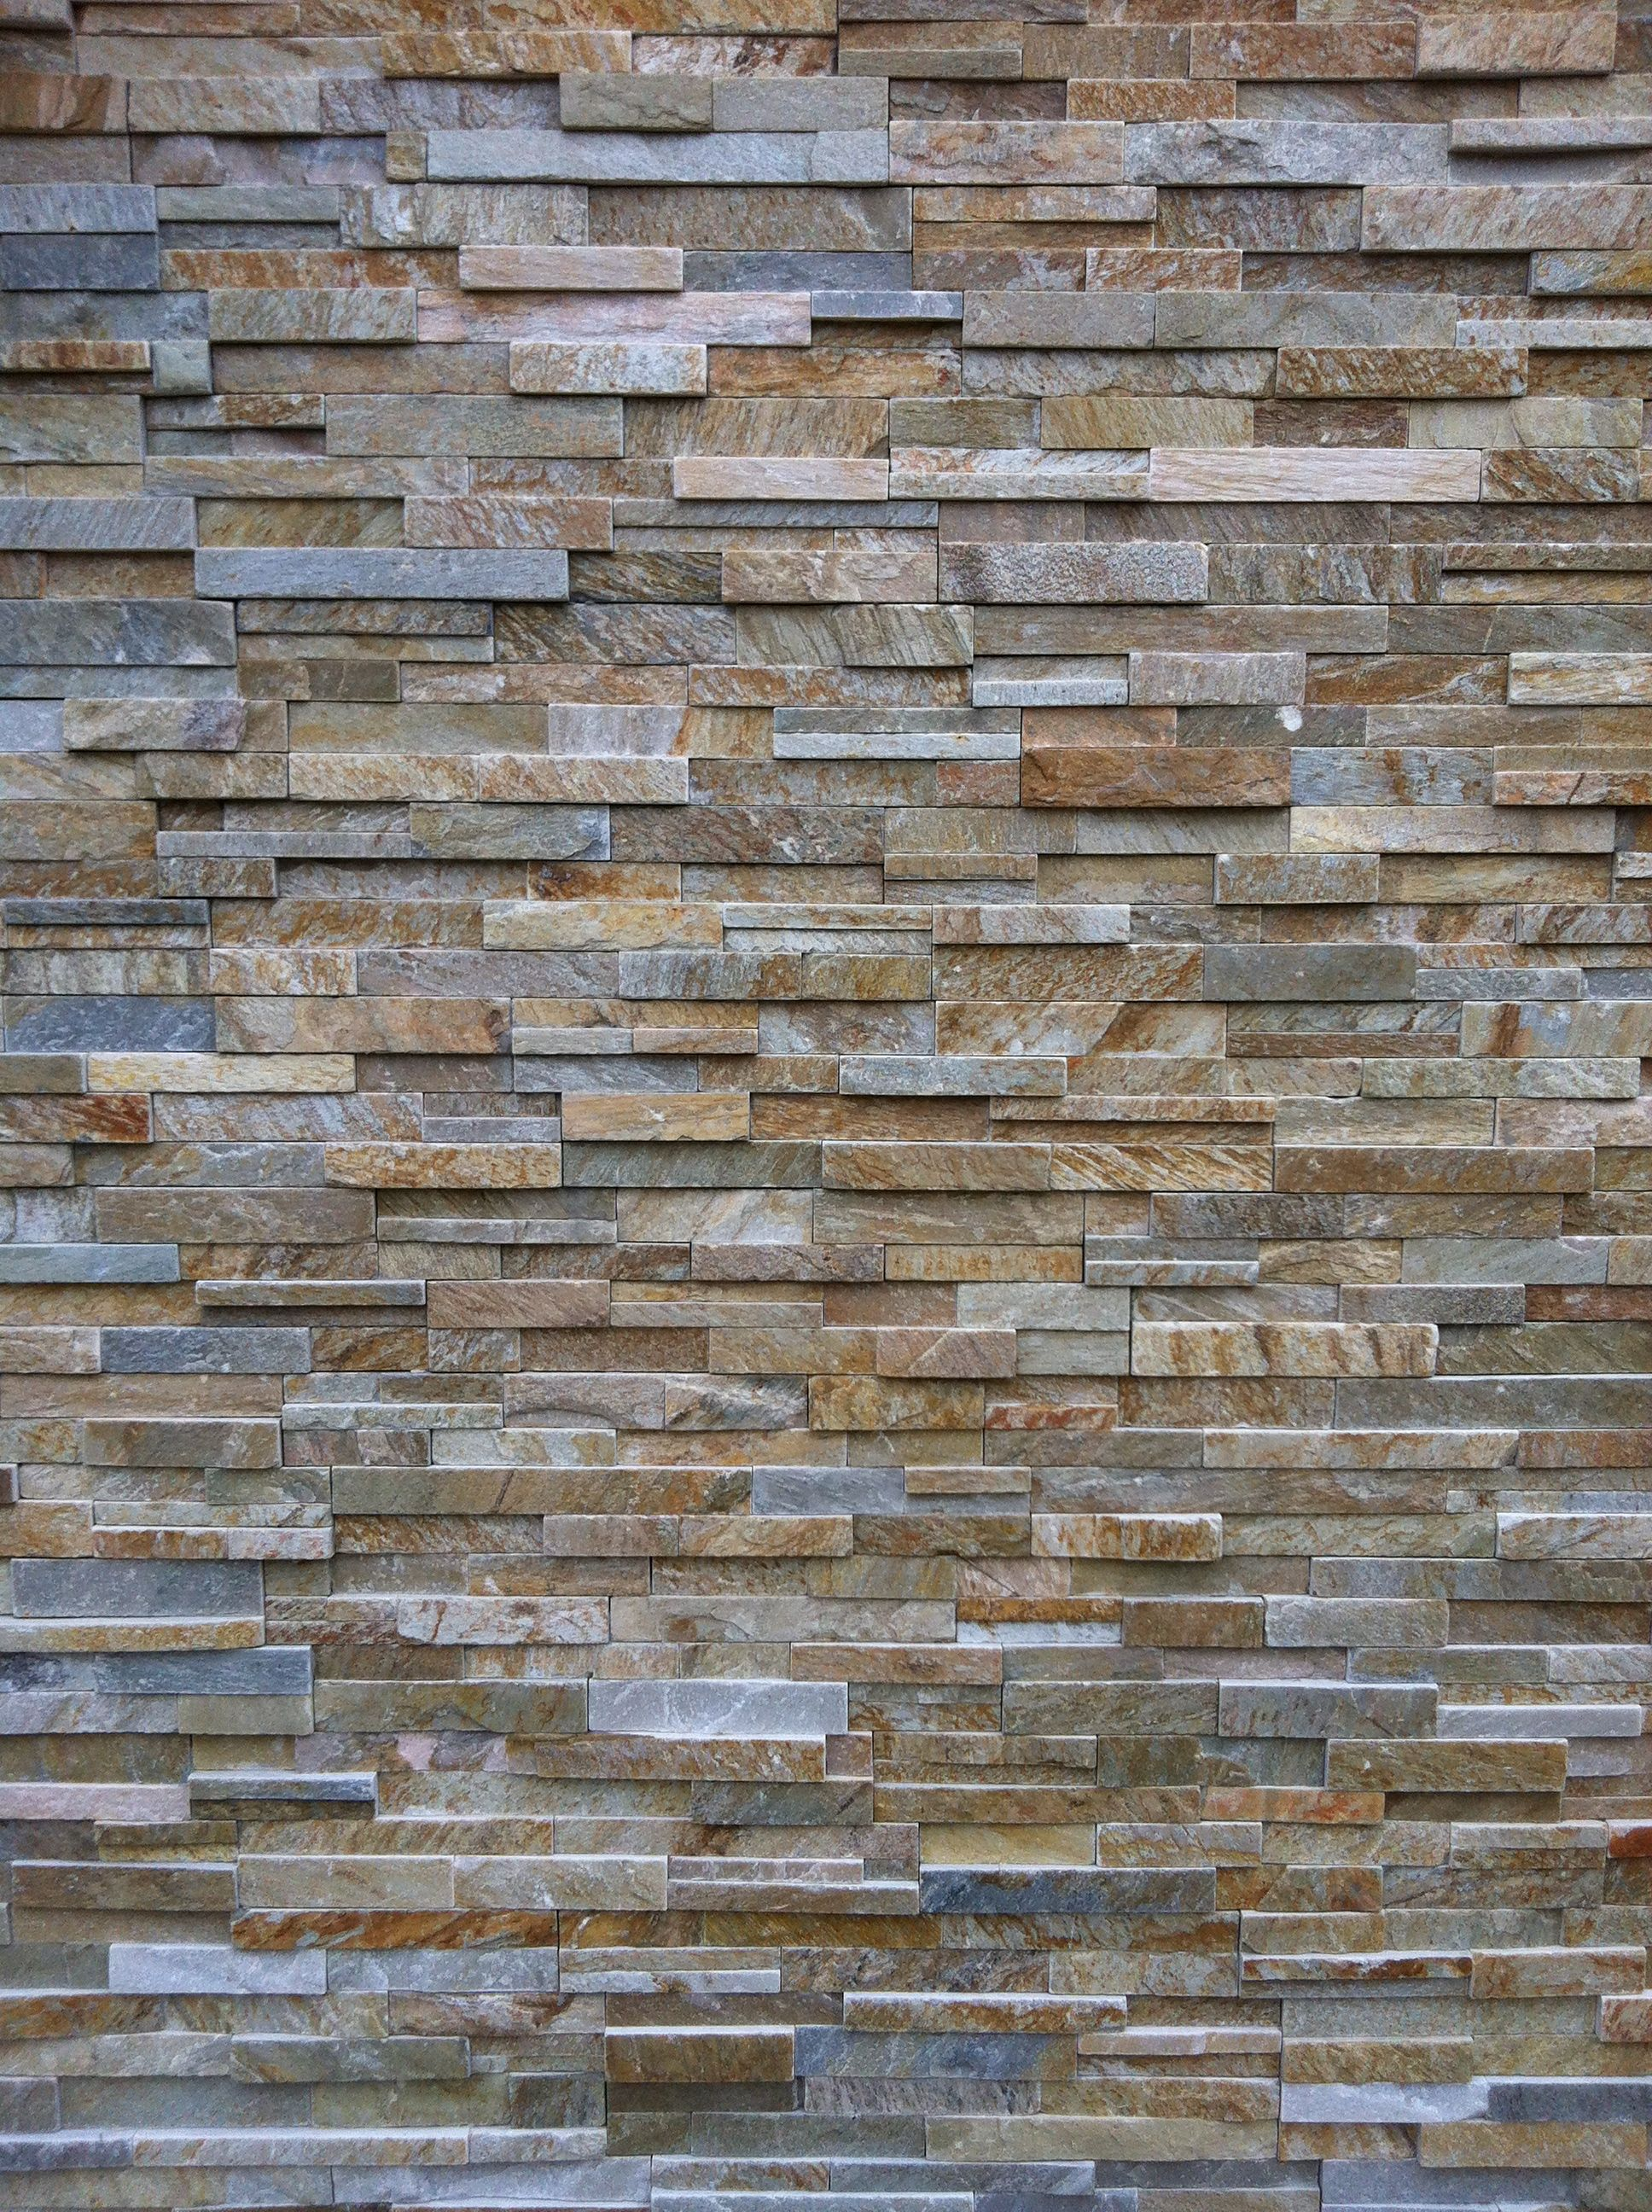 Ledgestone Stone Veneer Tan Grey More Contemporary Than